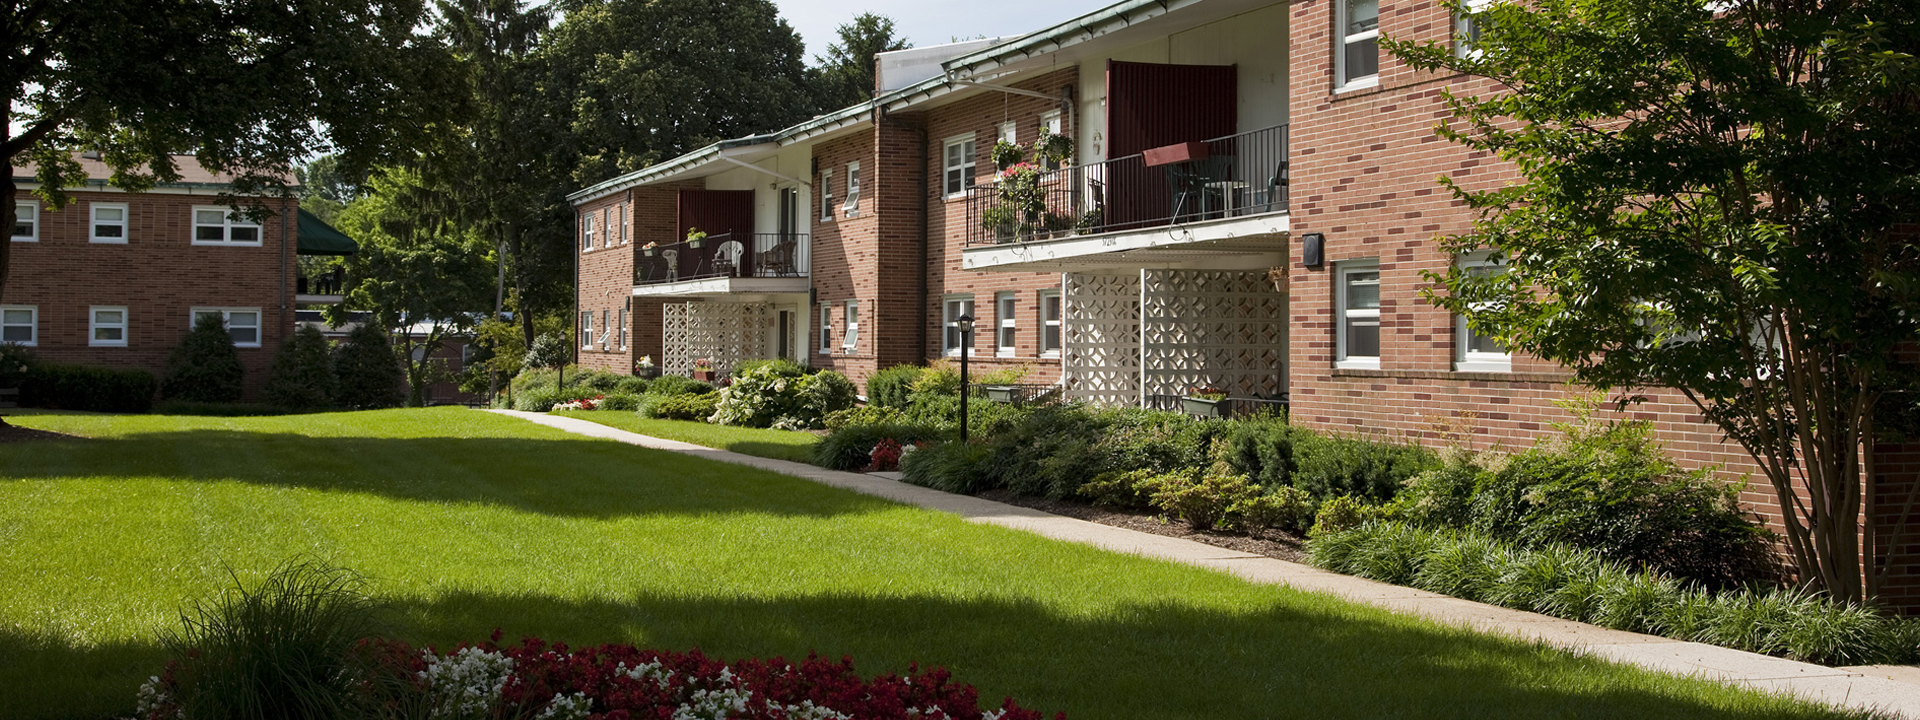 catonsville baltimore maryland apartments for rent from 717 overbrook from a g management